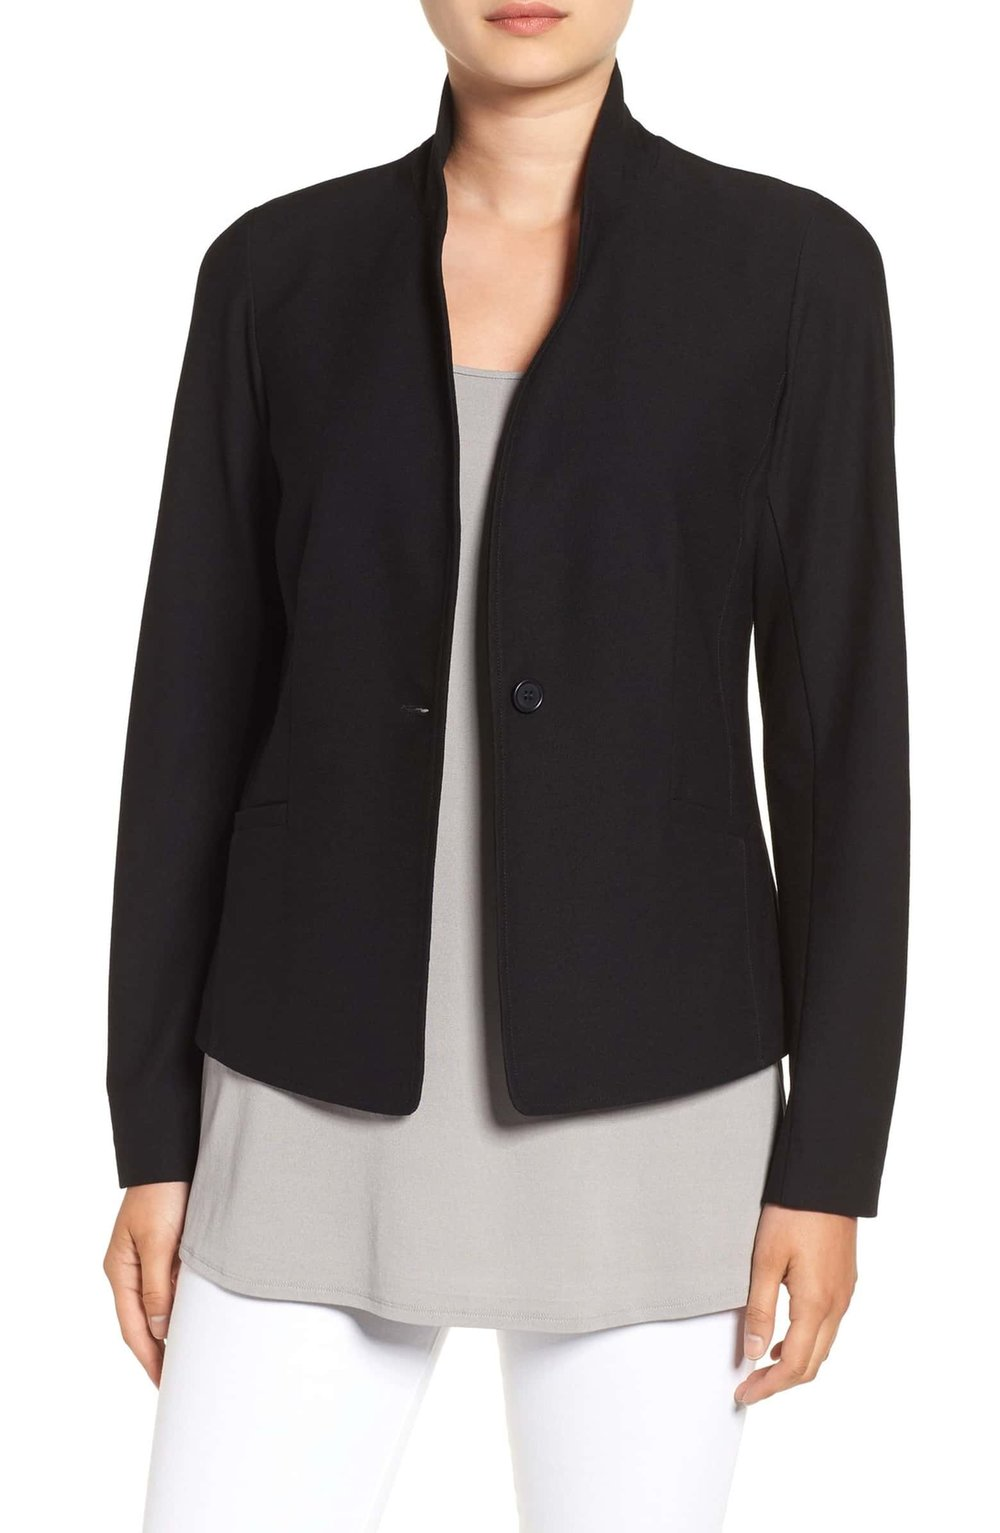 Ethical clothing at Nordstrom